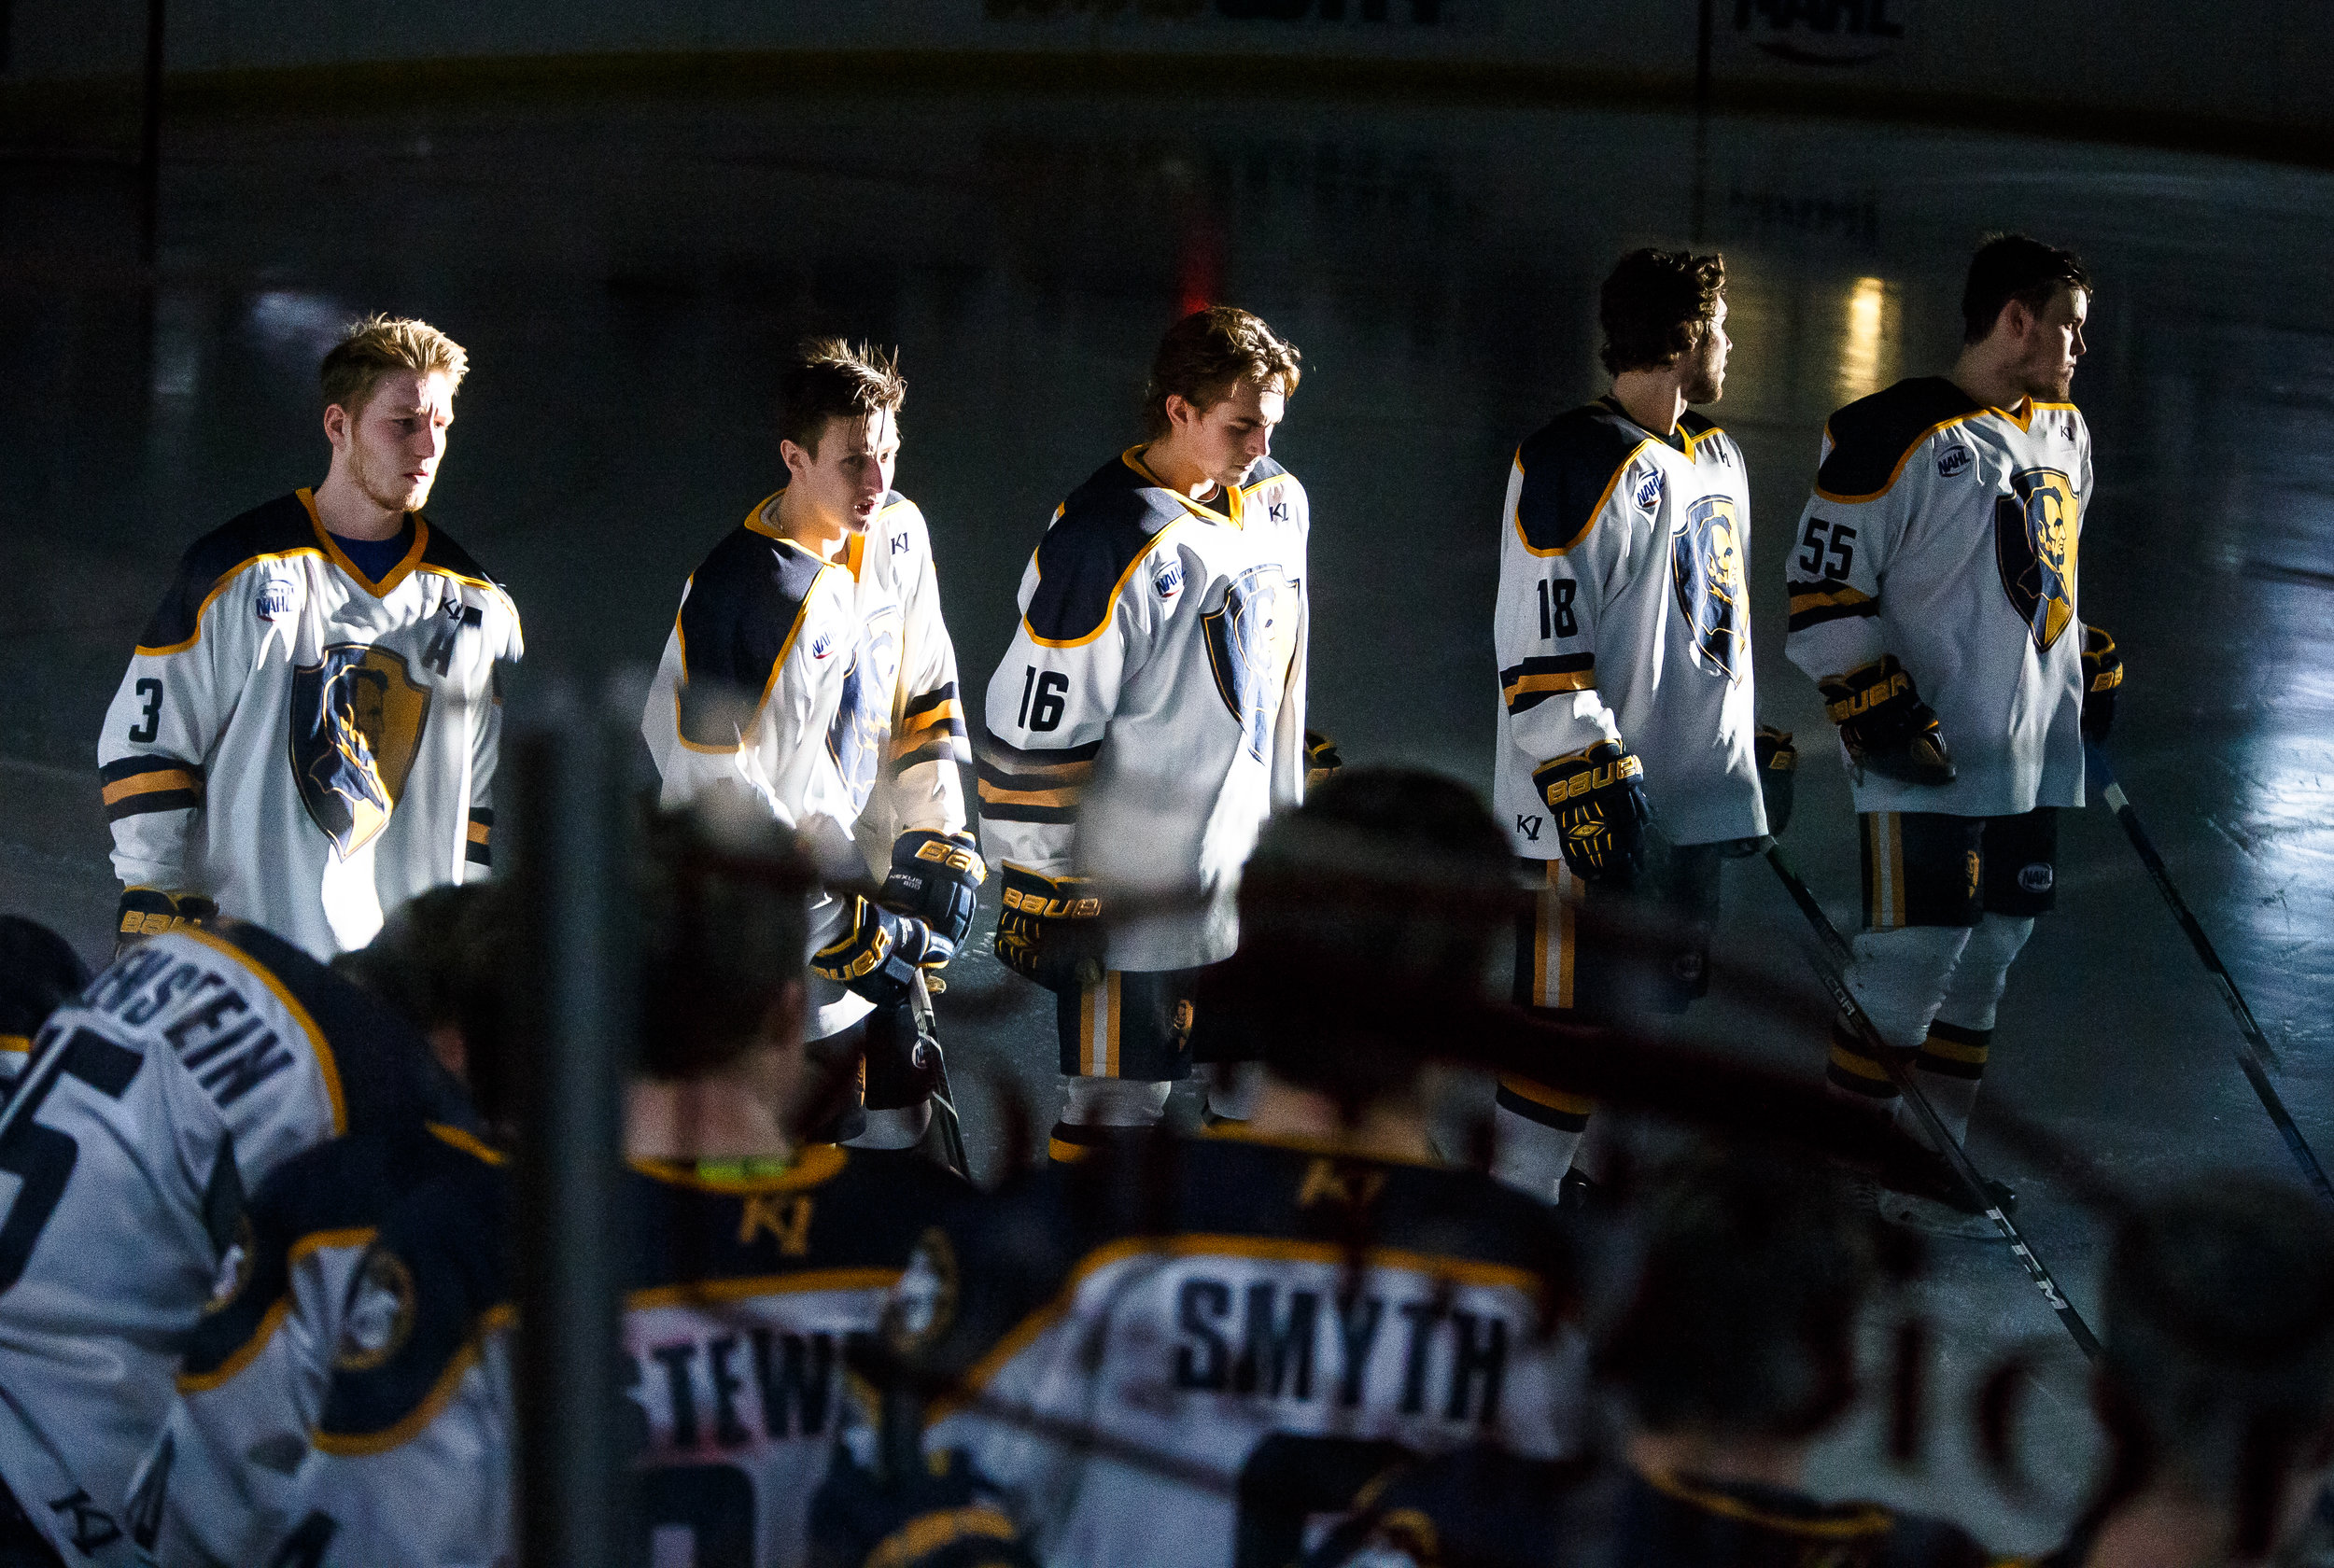 Springfield's Nick Schultze (16) and the Jr. Blues take the ice during player introductions prior to taking on the Janesville Jets in the first round of the first-round North American Hockey League playoff series at the Nelson Center, Friday, April 20, 2018, in Springfield, Ill. [Justin L. Fowler/The State Journal-Register]